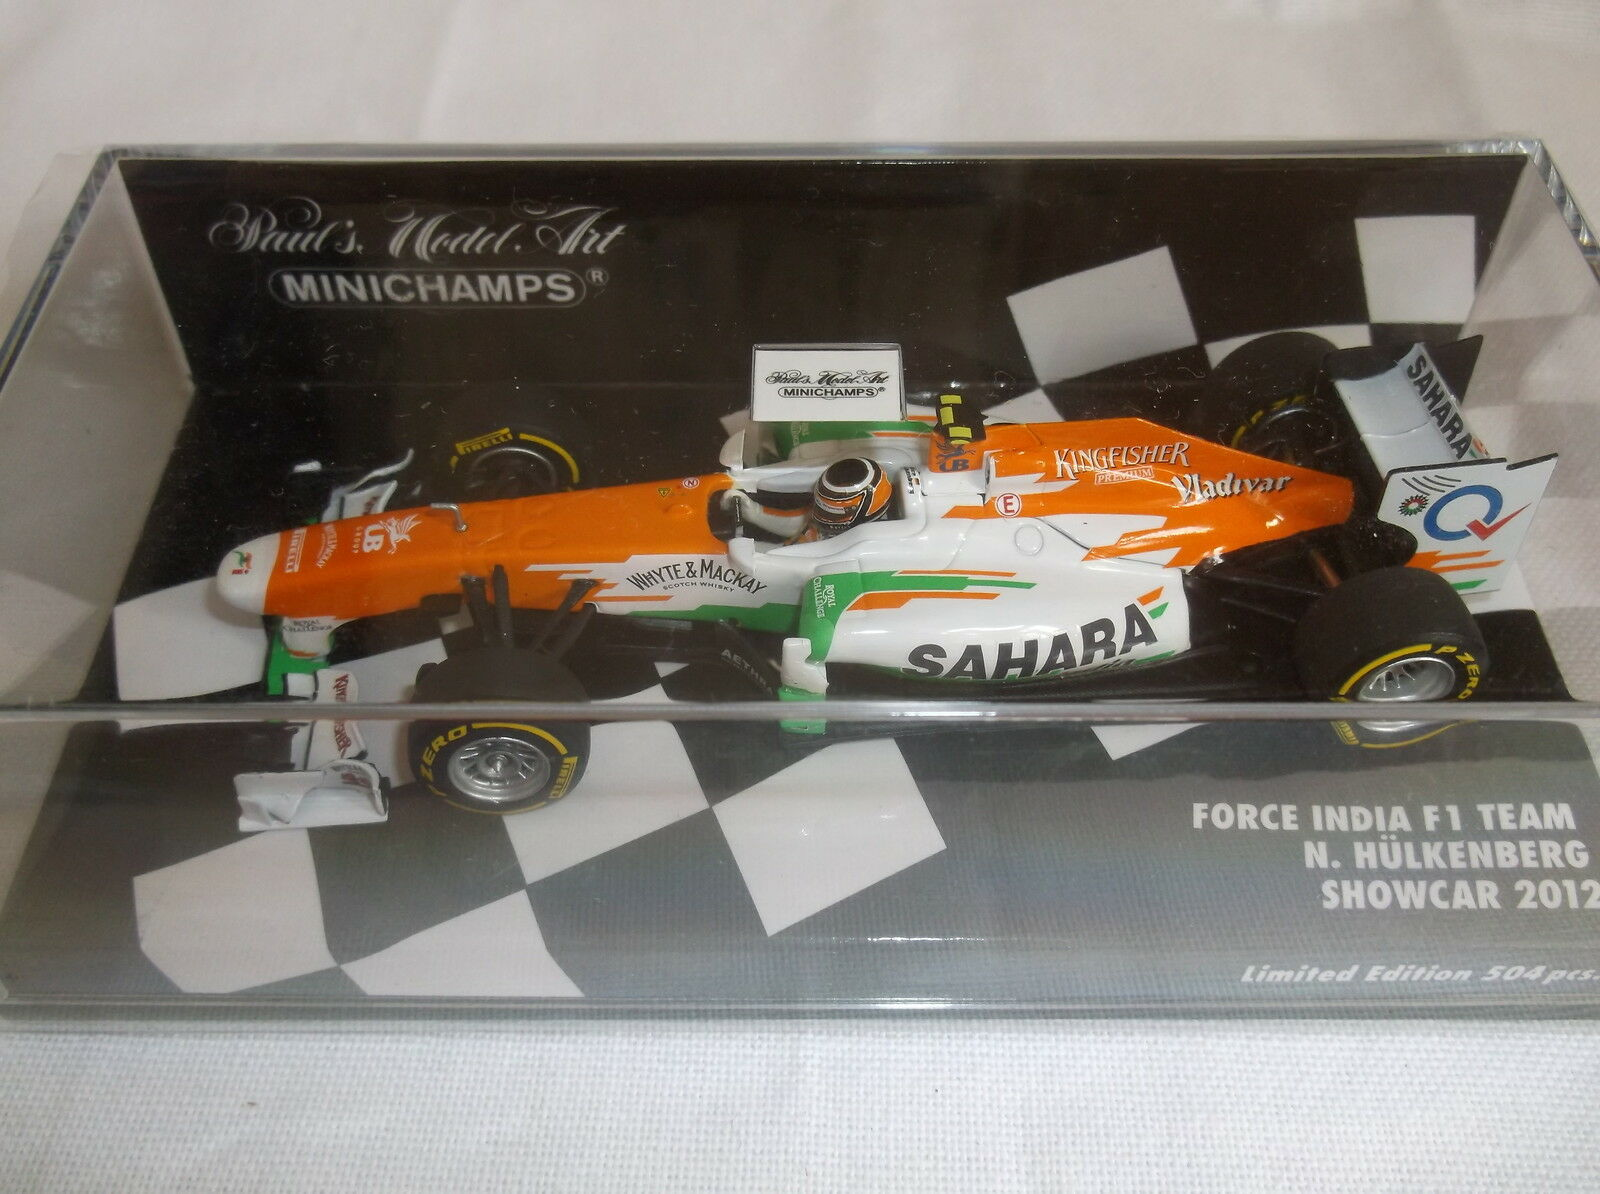 BRAND NEW MINICHAMPS 1 43  N. Hulkenberg  Force India F1 Tea   Showcar 2012